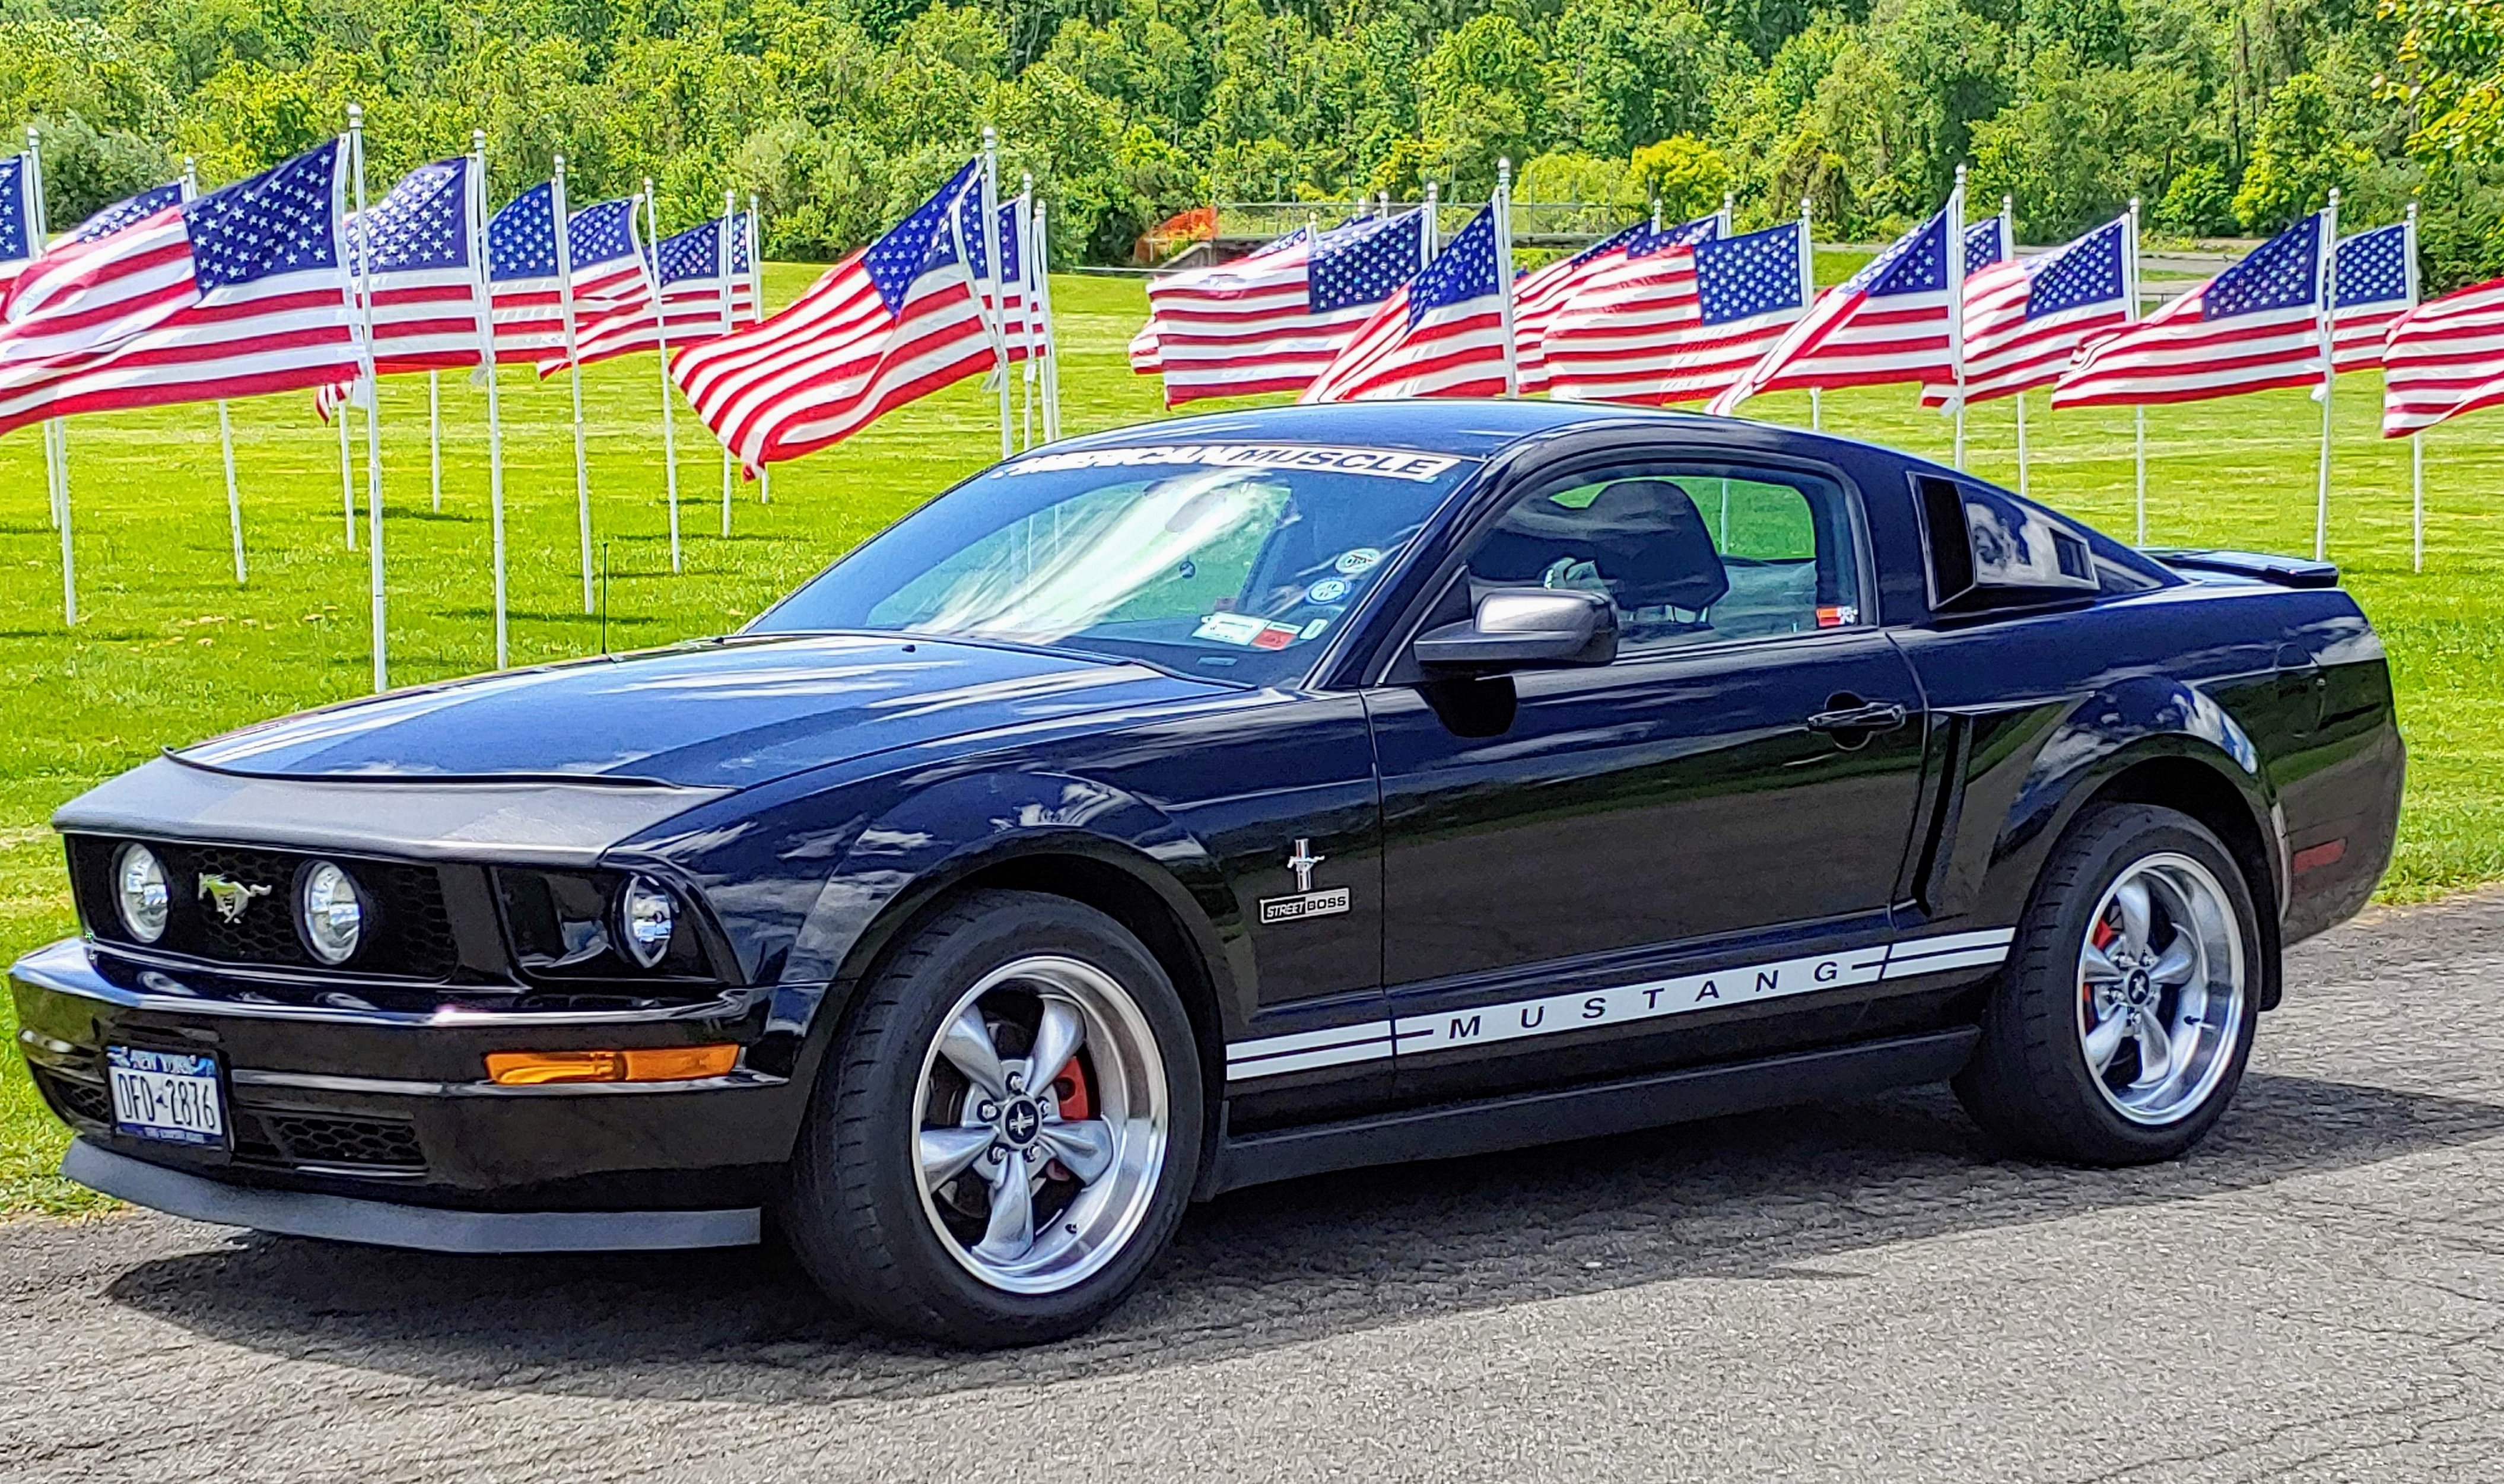 Click image for larger version  Name:Mustang with flags.2.jpg Views:16 Size:2.12 MB ID:258411